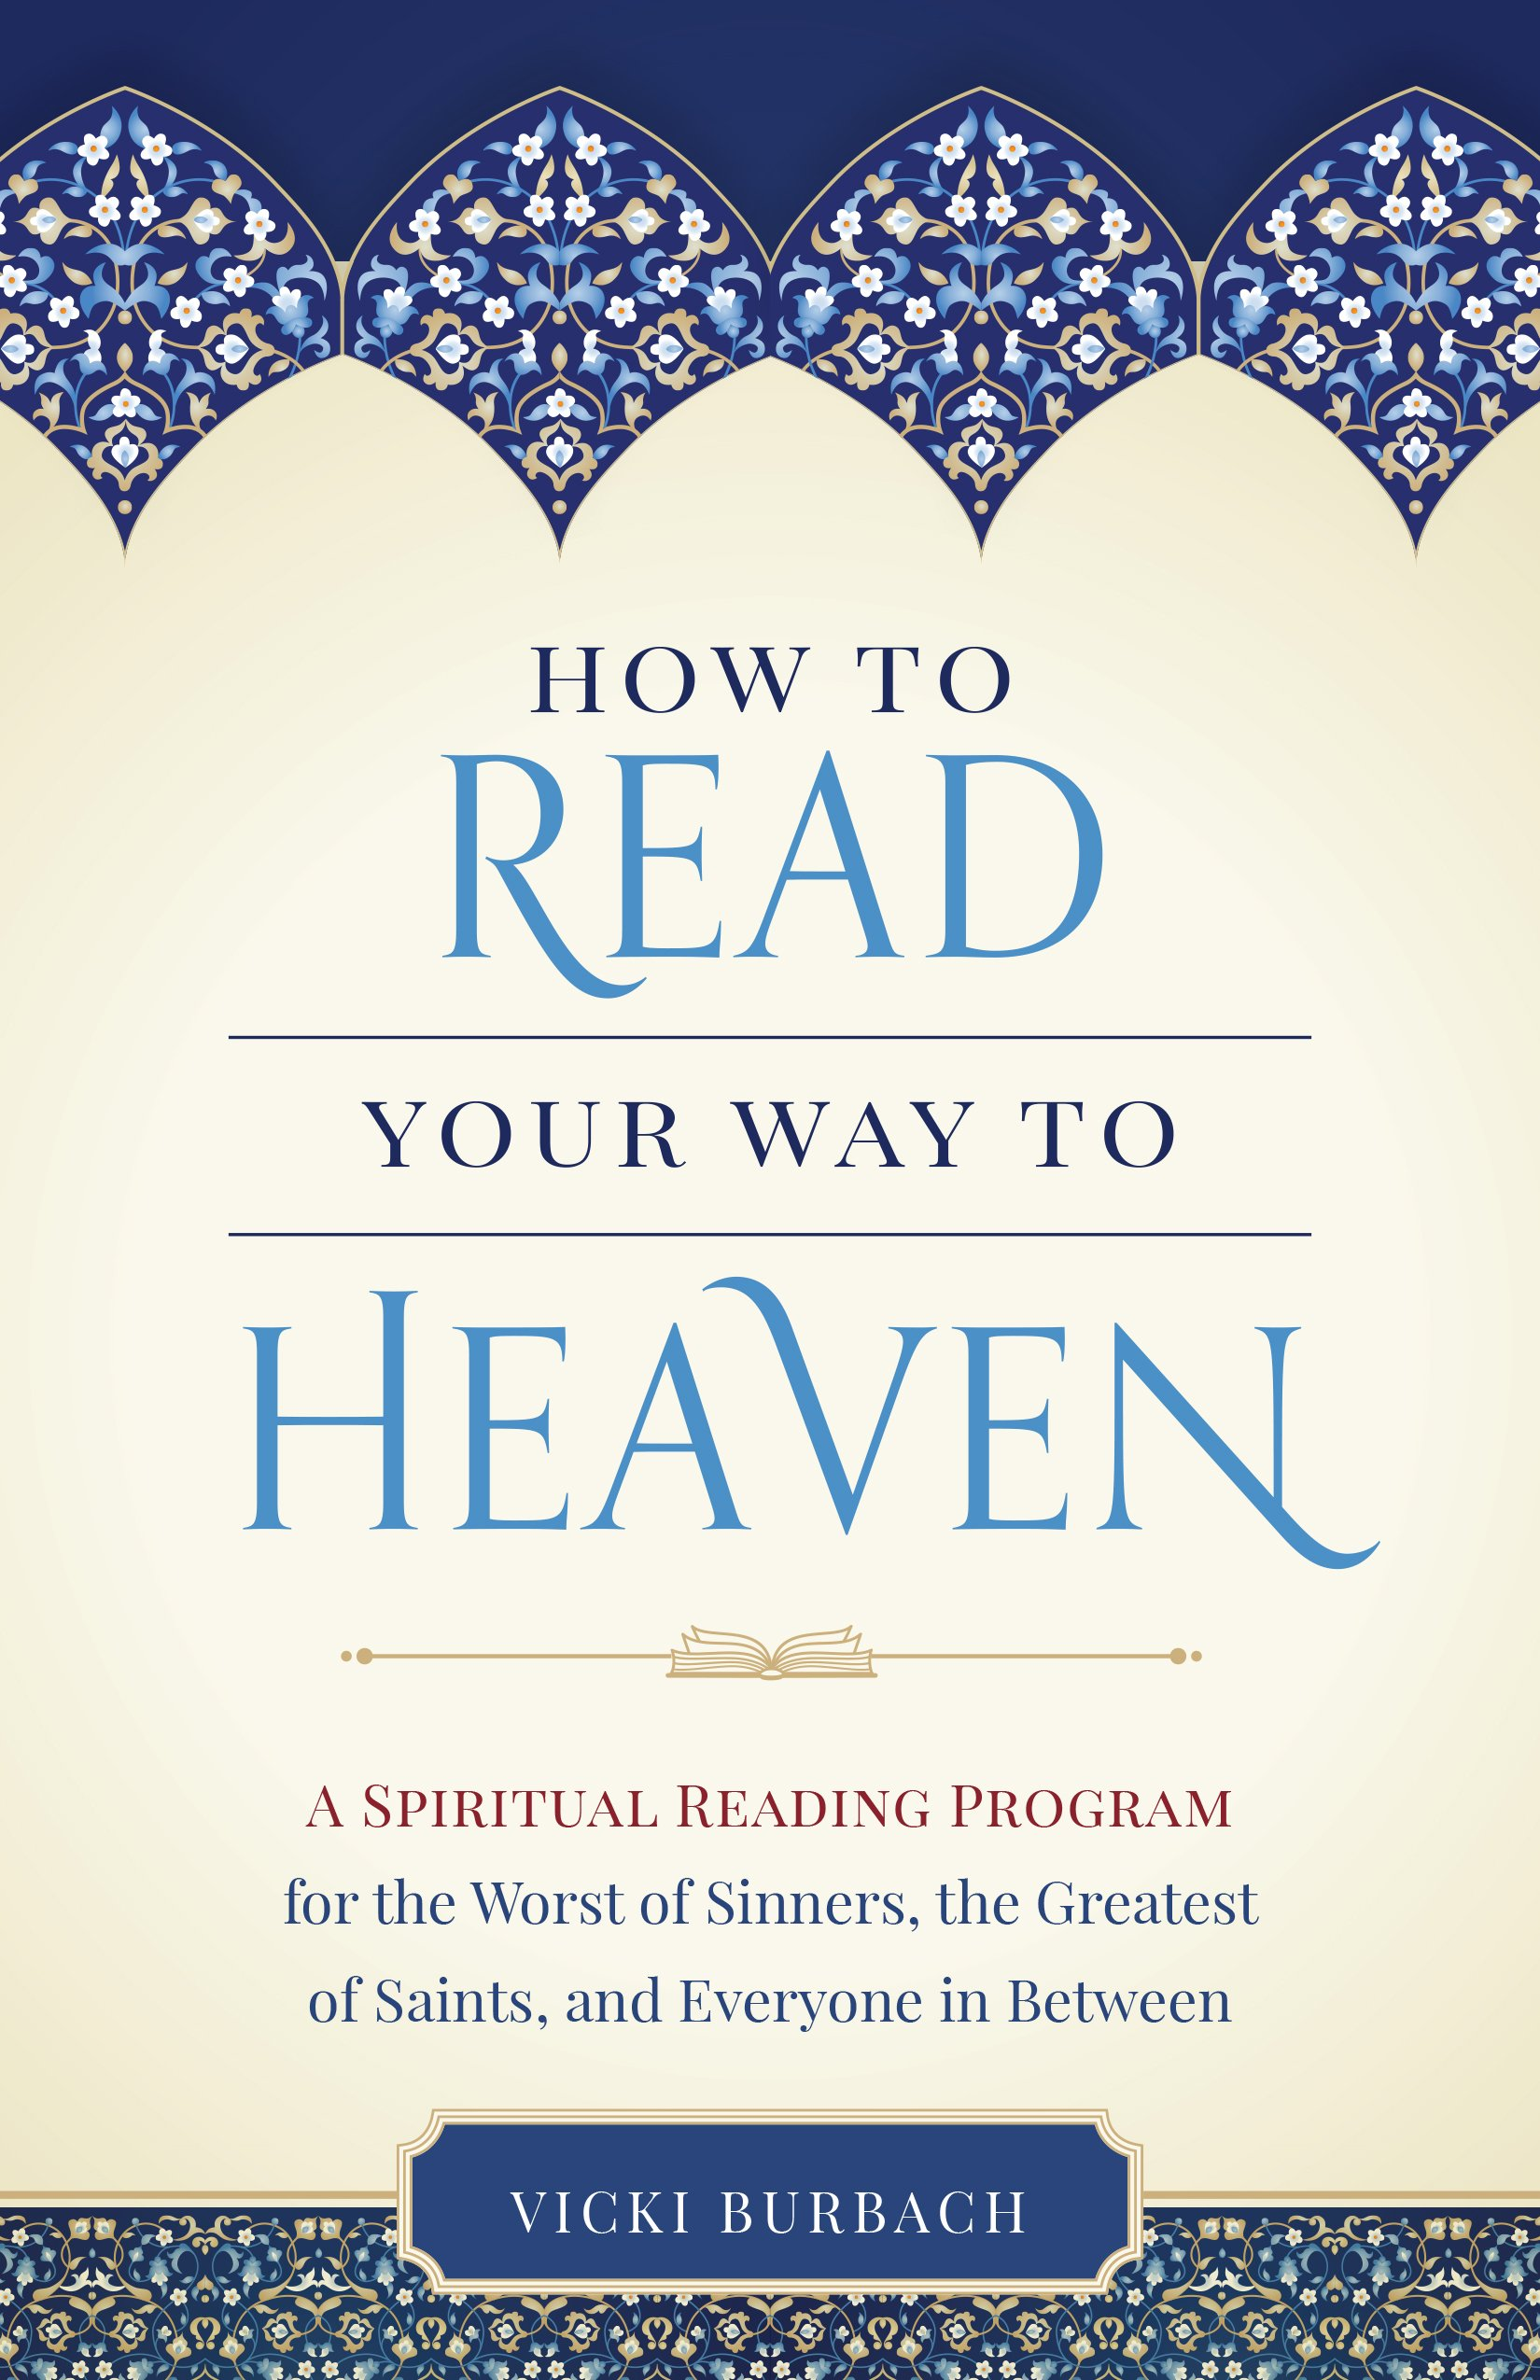 How To Read Your Way To Heaven: Vicki Burbach: 9781622823604: Amazon:  Books